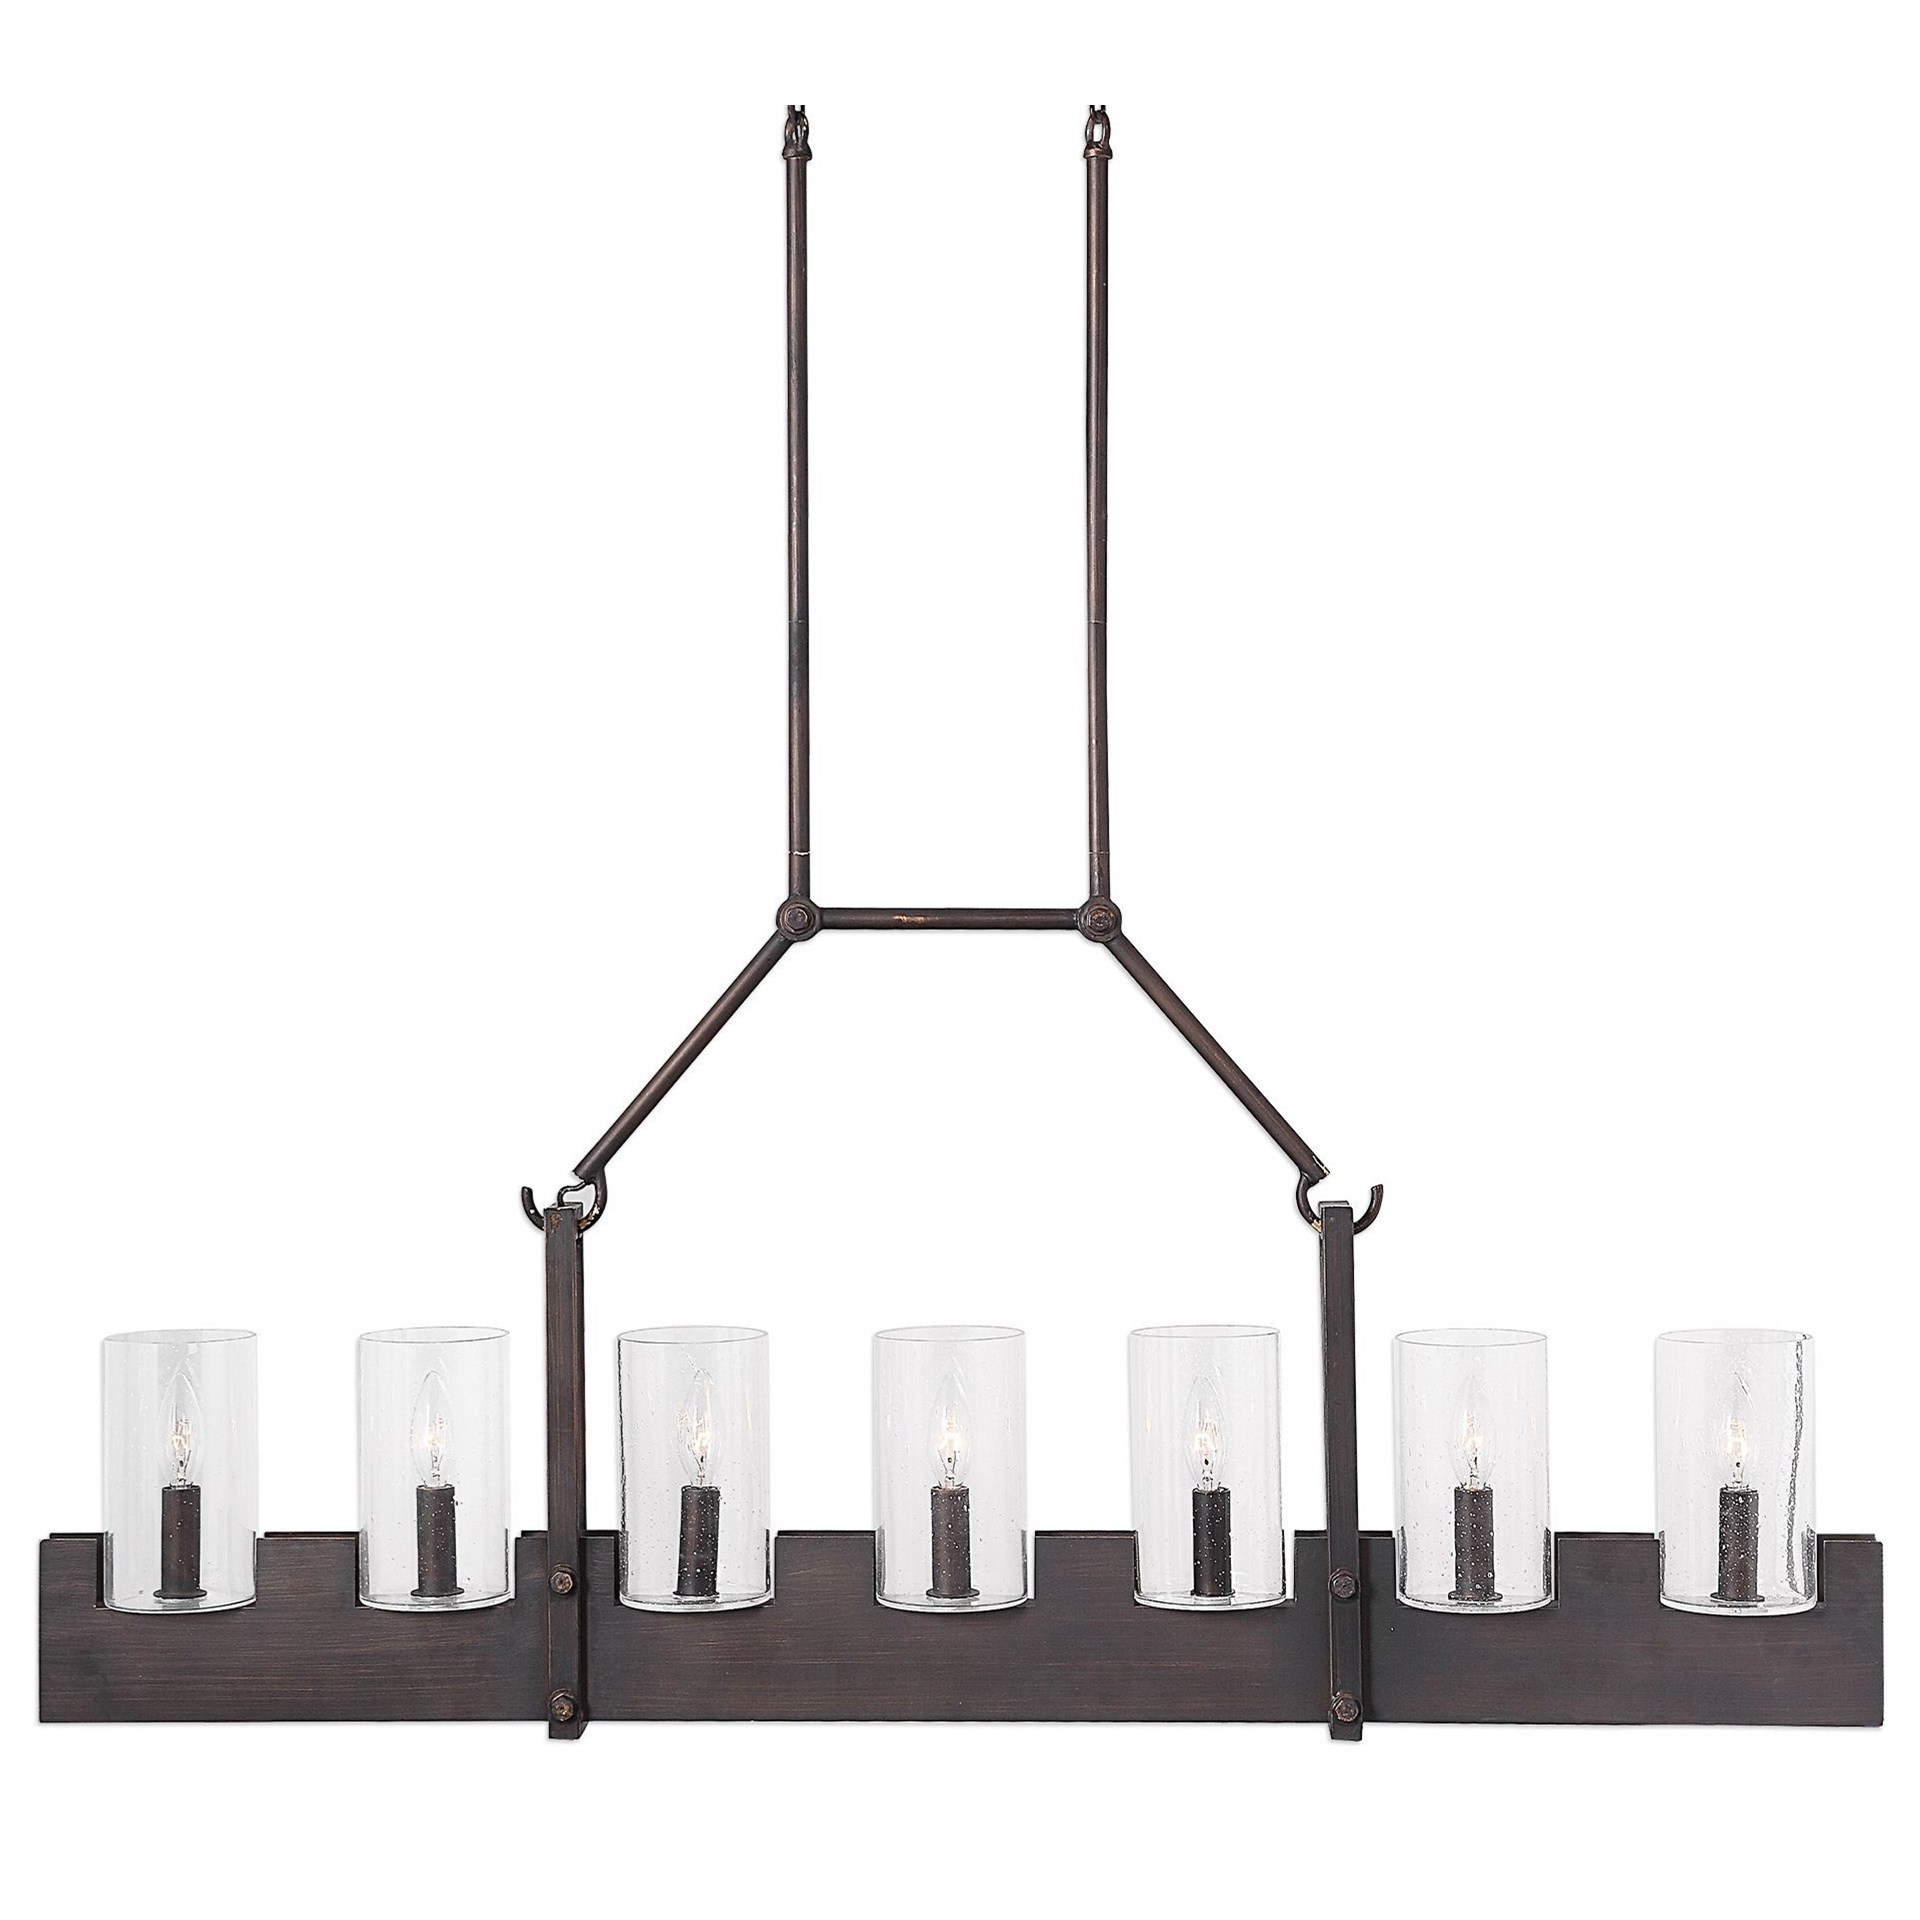 Euclid 2 Light Kitchen Island Linear Pendants For Fashionable Uttermost Lighting Fixtures – Pendant Lights 21318 Pinecroft (View 10 of 20)